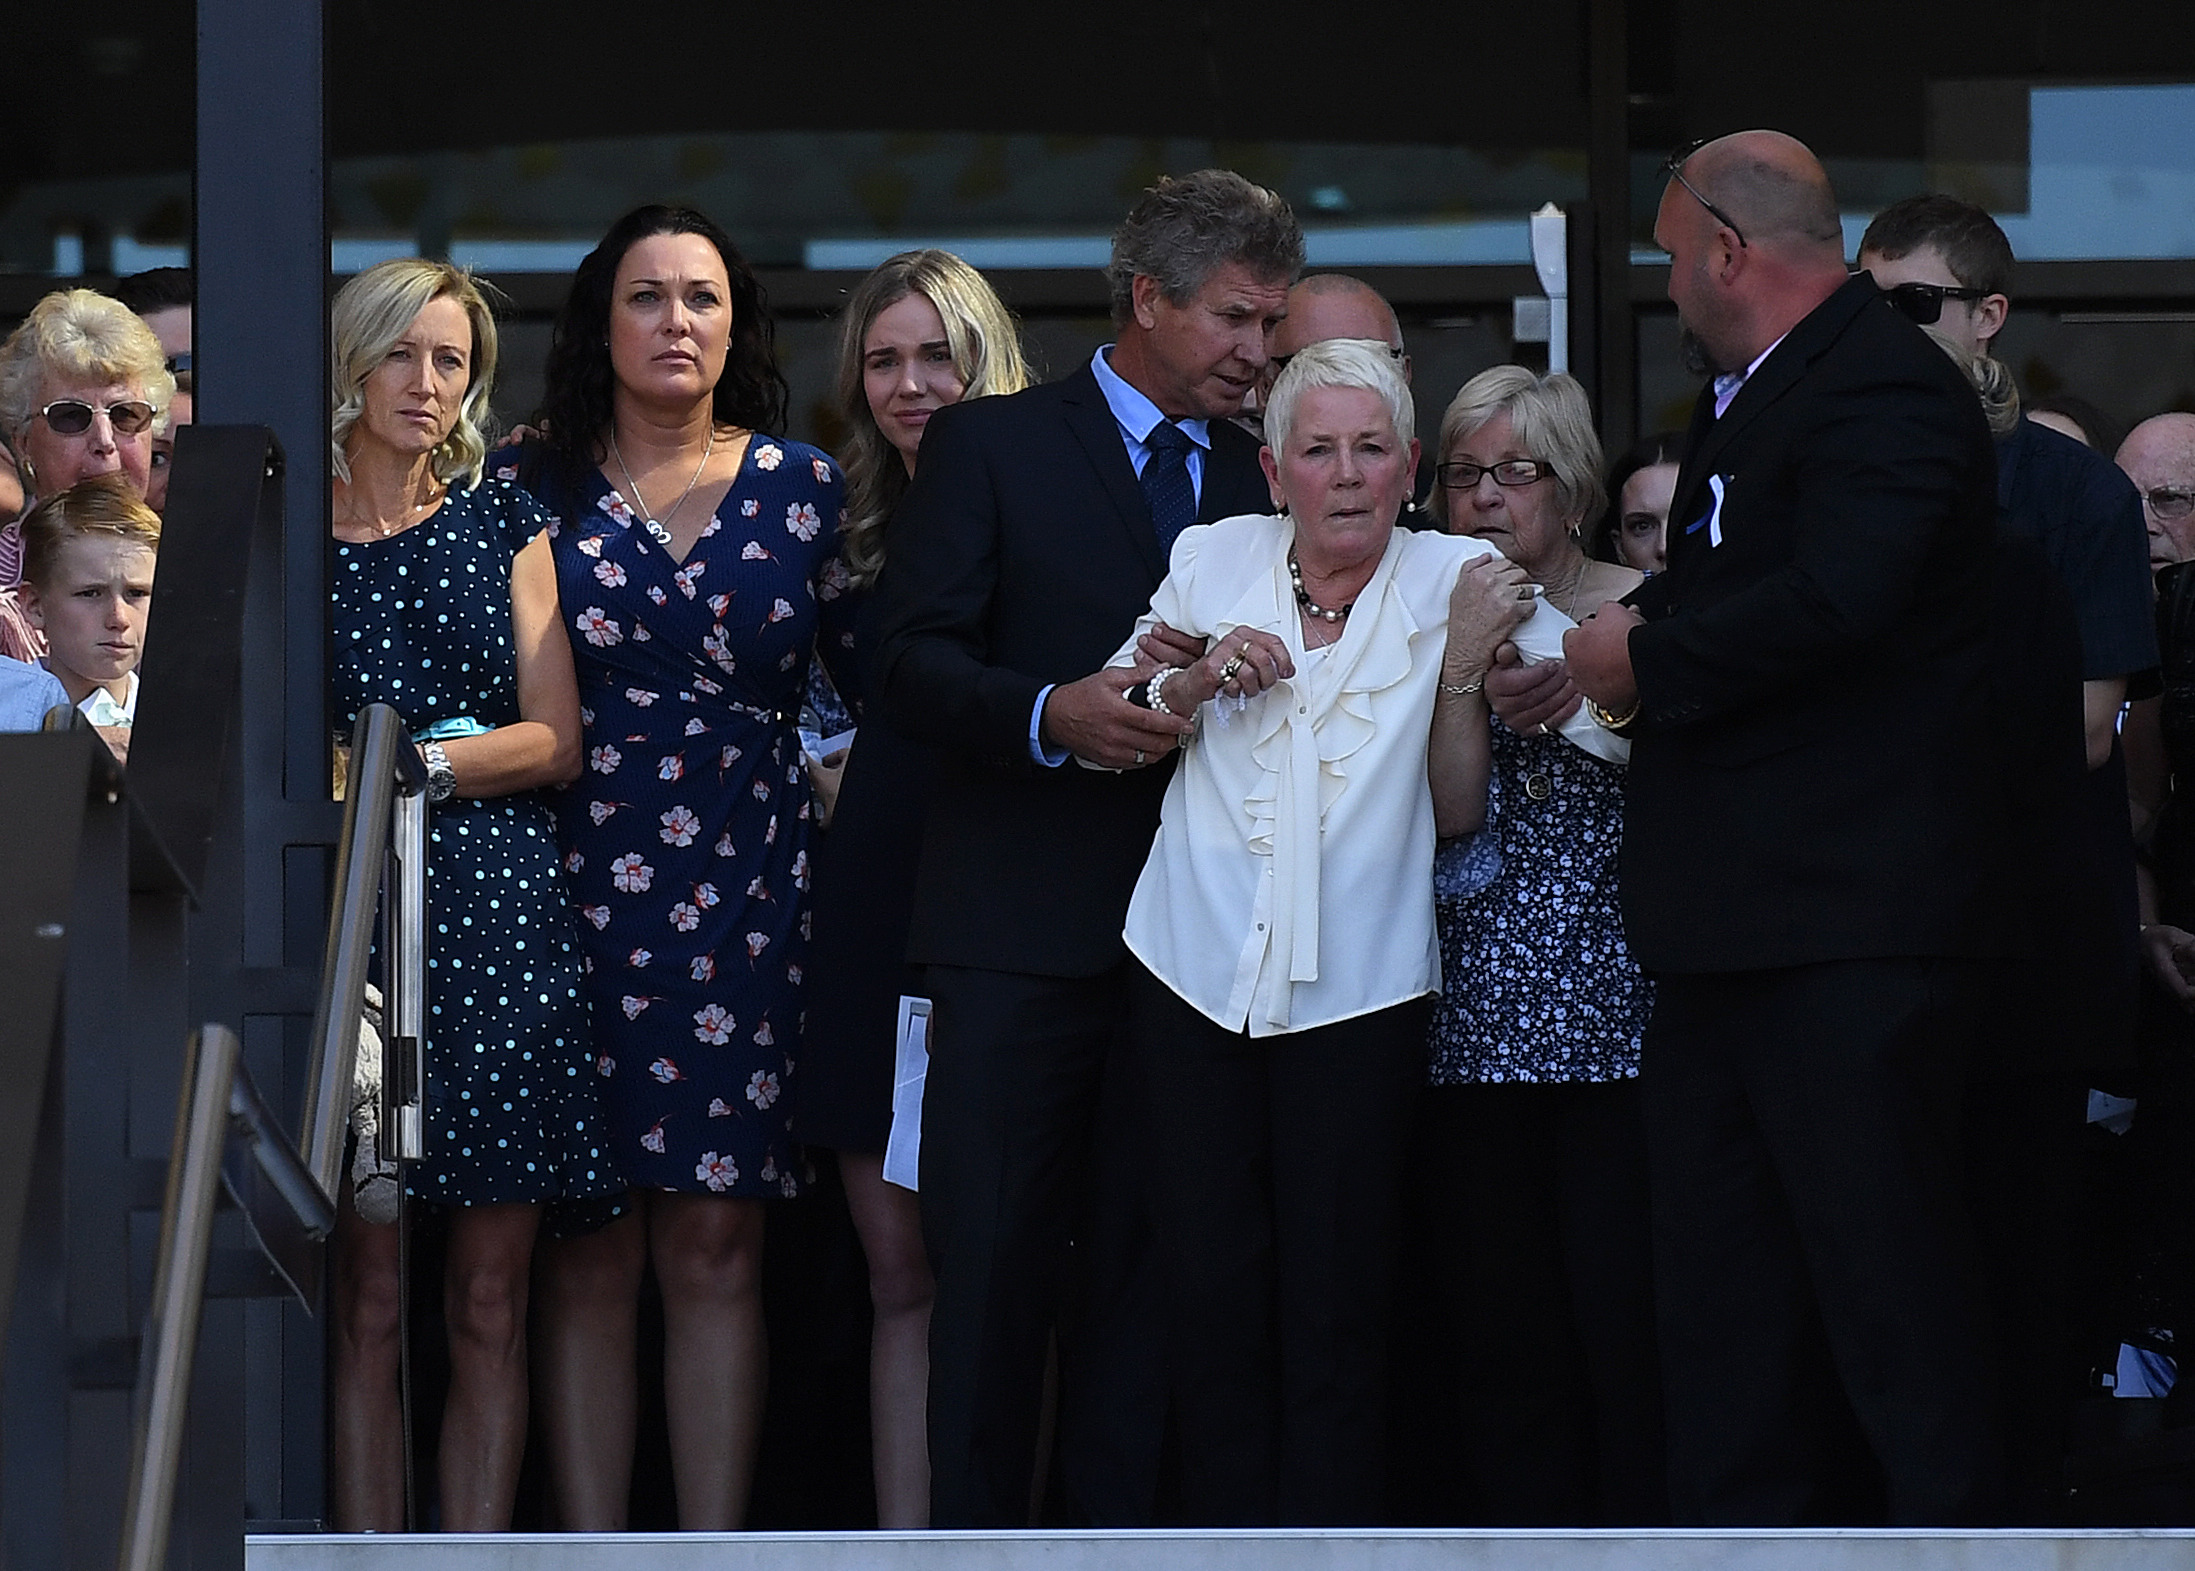 Dean Mercer's wife Reen (2nd left) and his mother Maureen (on right, supported) watch as his coffin is carried away. (AAP)